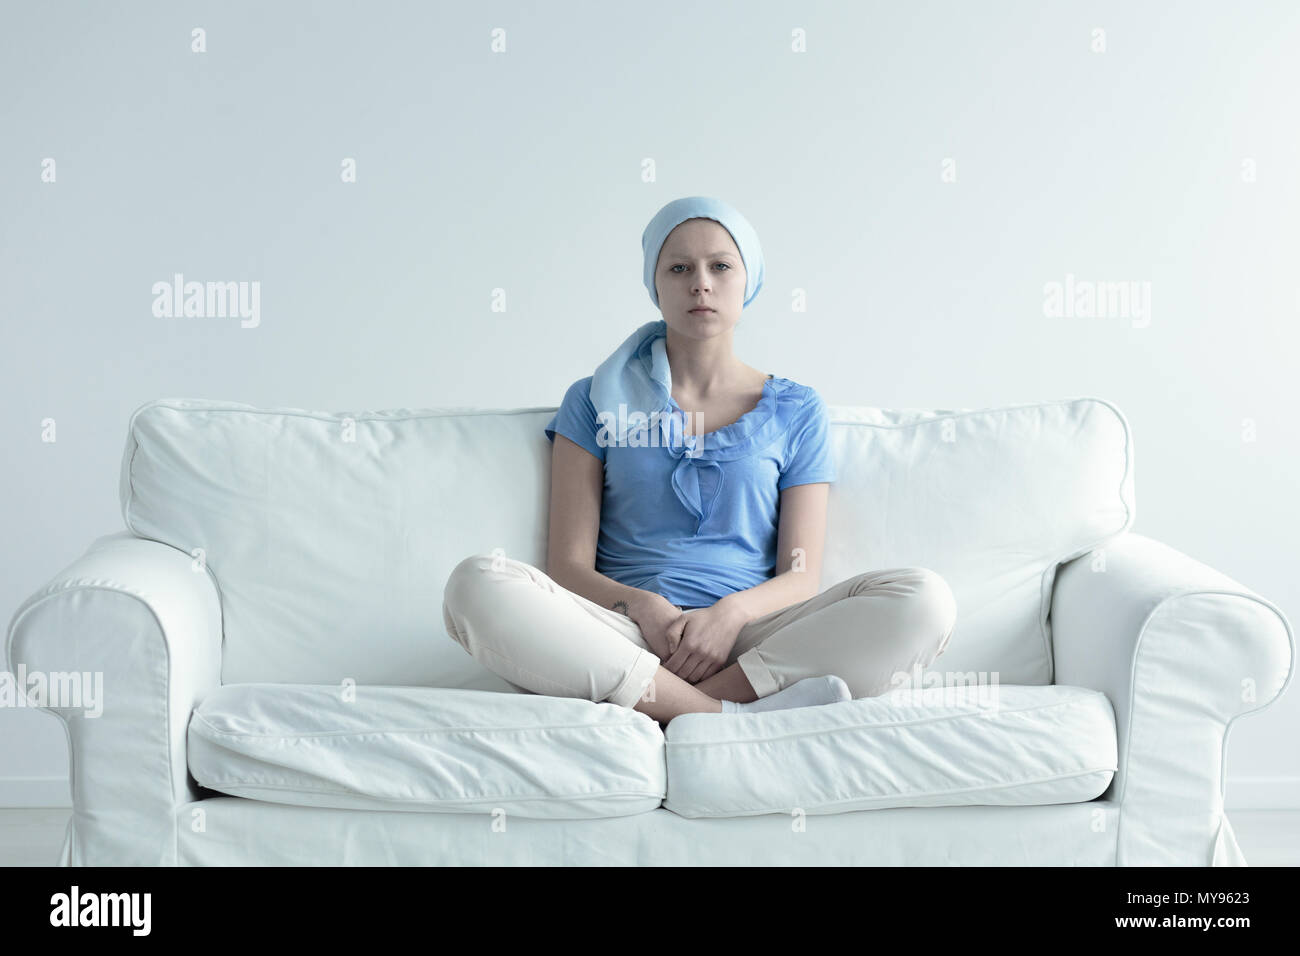 Woman suffering for alopecia becasue of radiation therapy - Stock Image